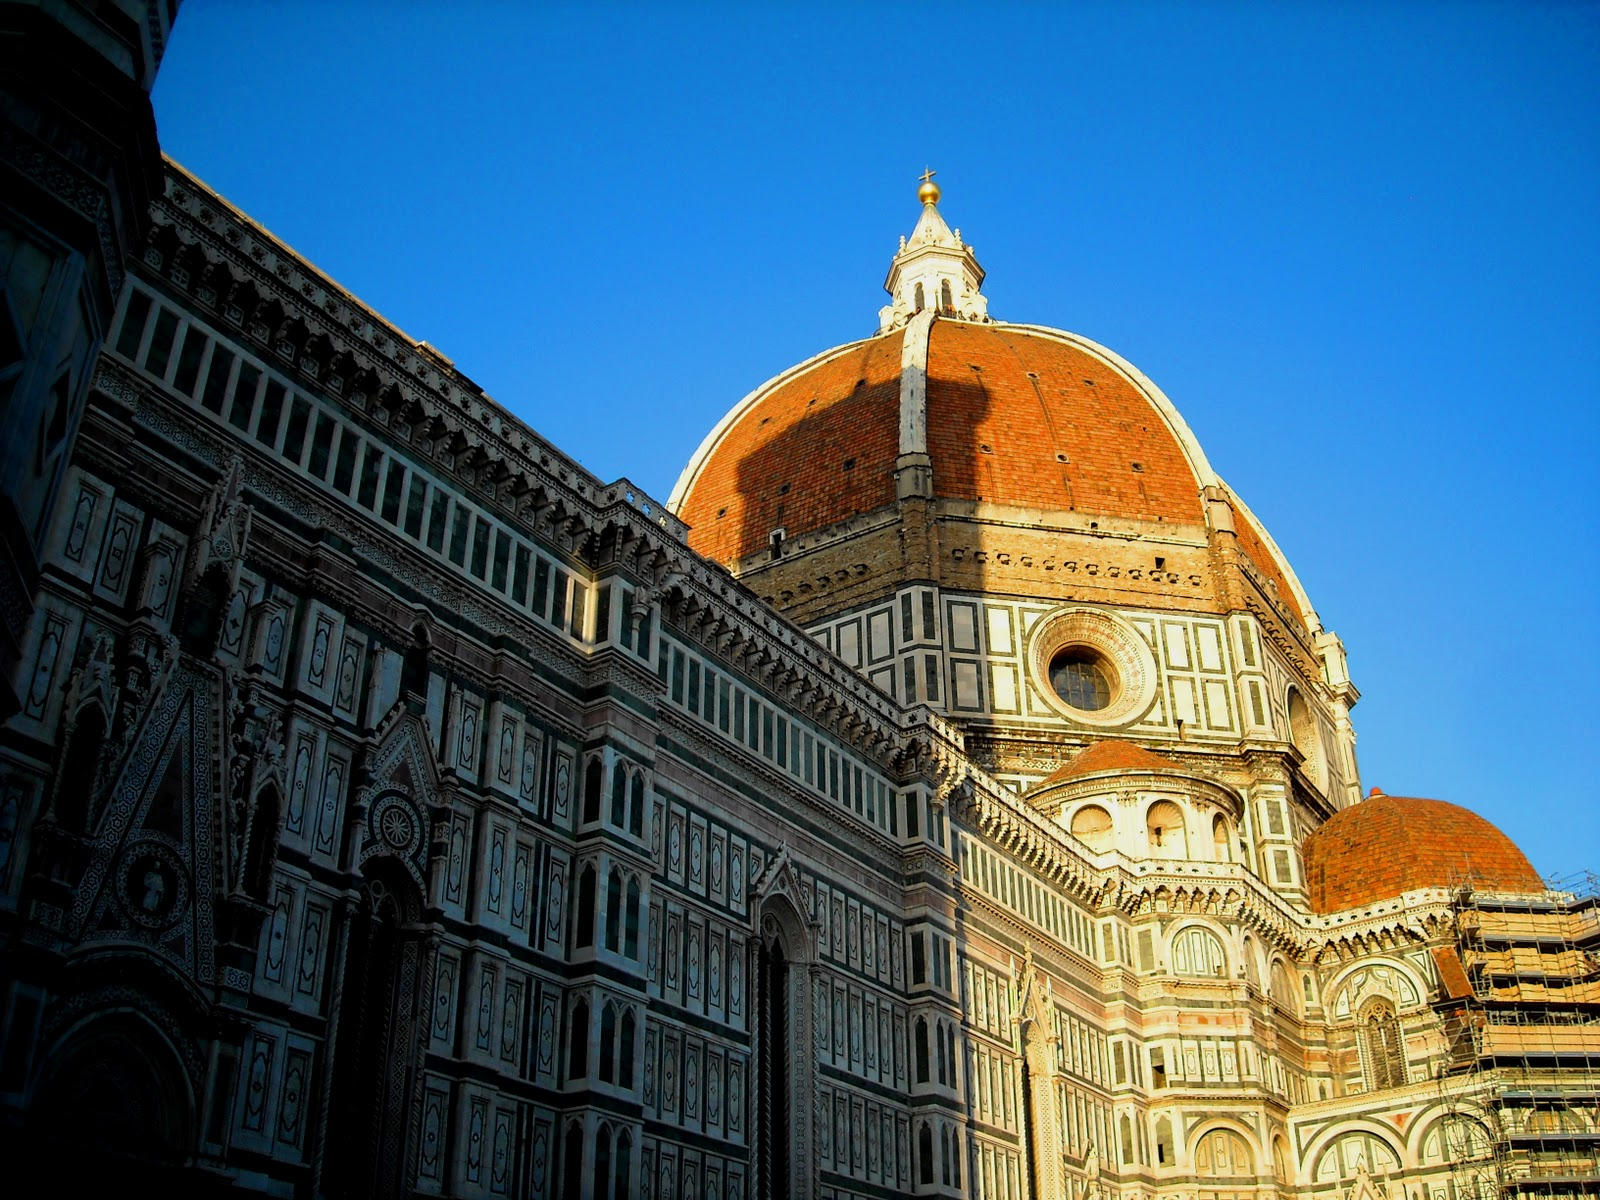 essays about brunelleschis duomo Filippo brunelleschi's father was brunellesco di lippo who was a although the duomo santa maria del fiore was the most famous of brunelleschi's architectural.